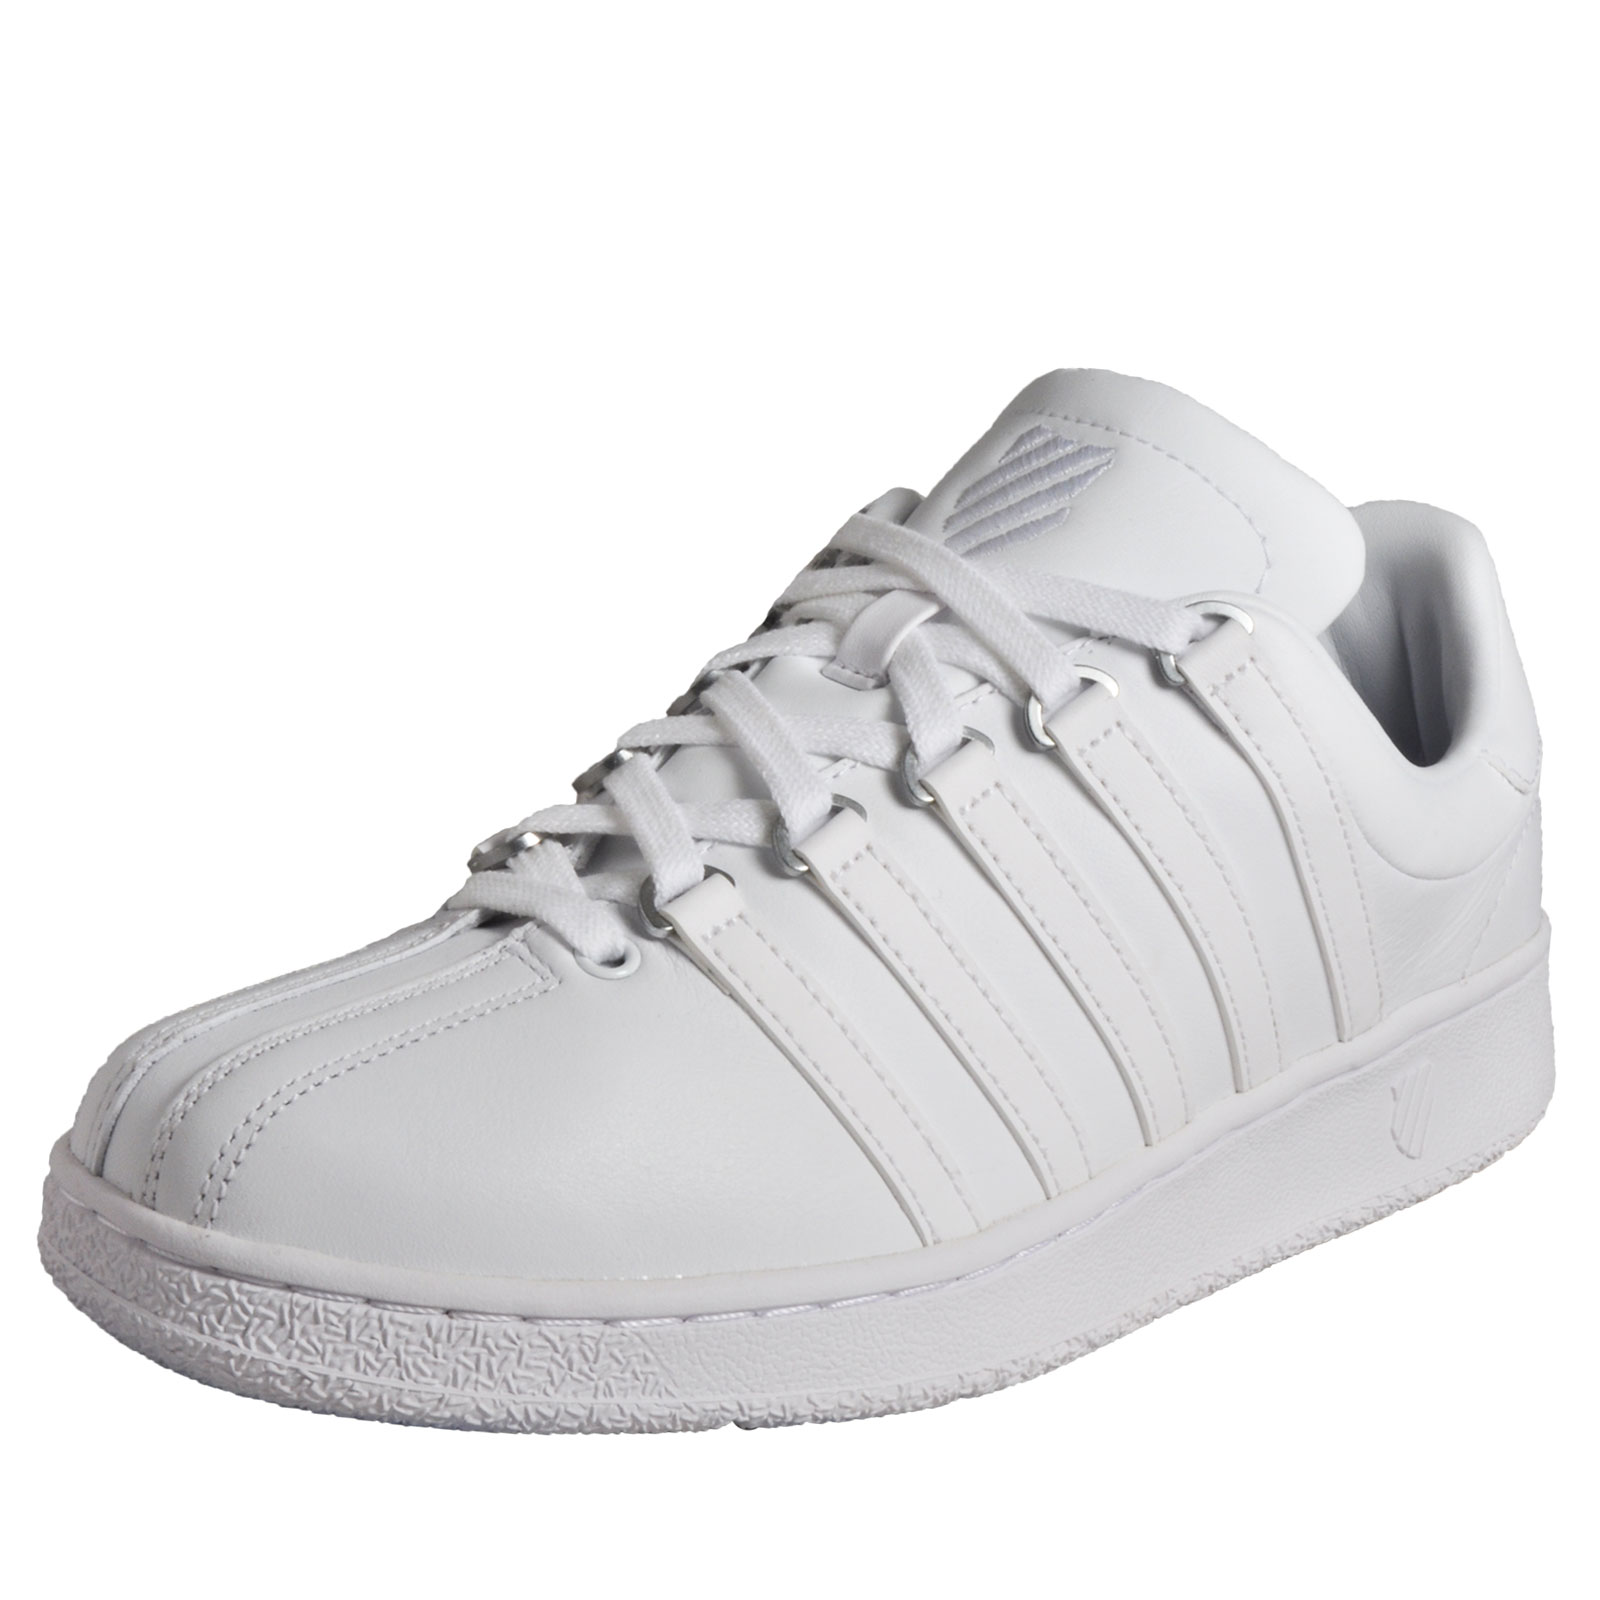 9982df4338d6 K Swiss Classic Vintage Men s Leather Casual Leather Retro Trainers White